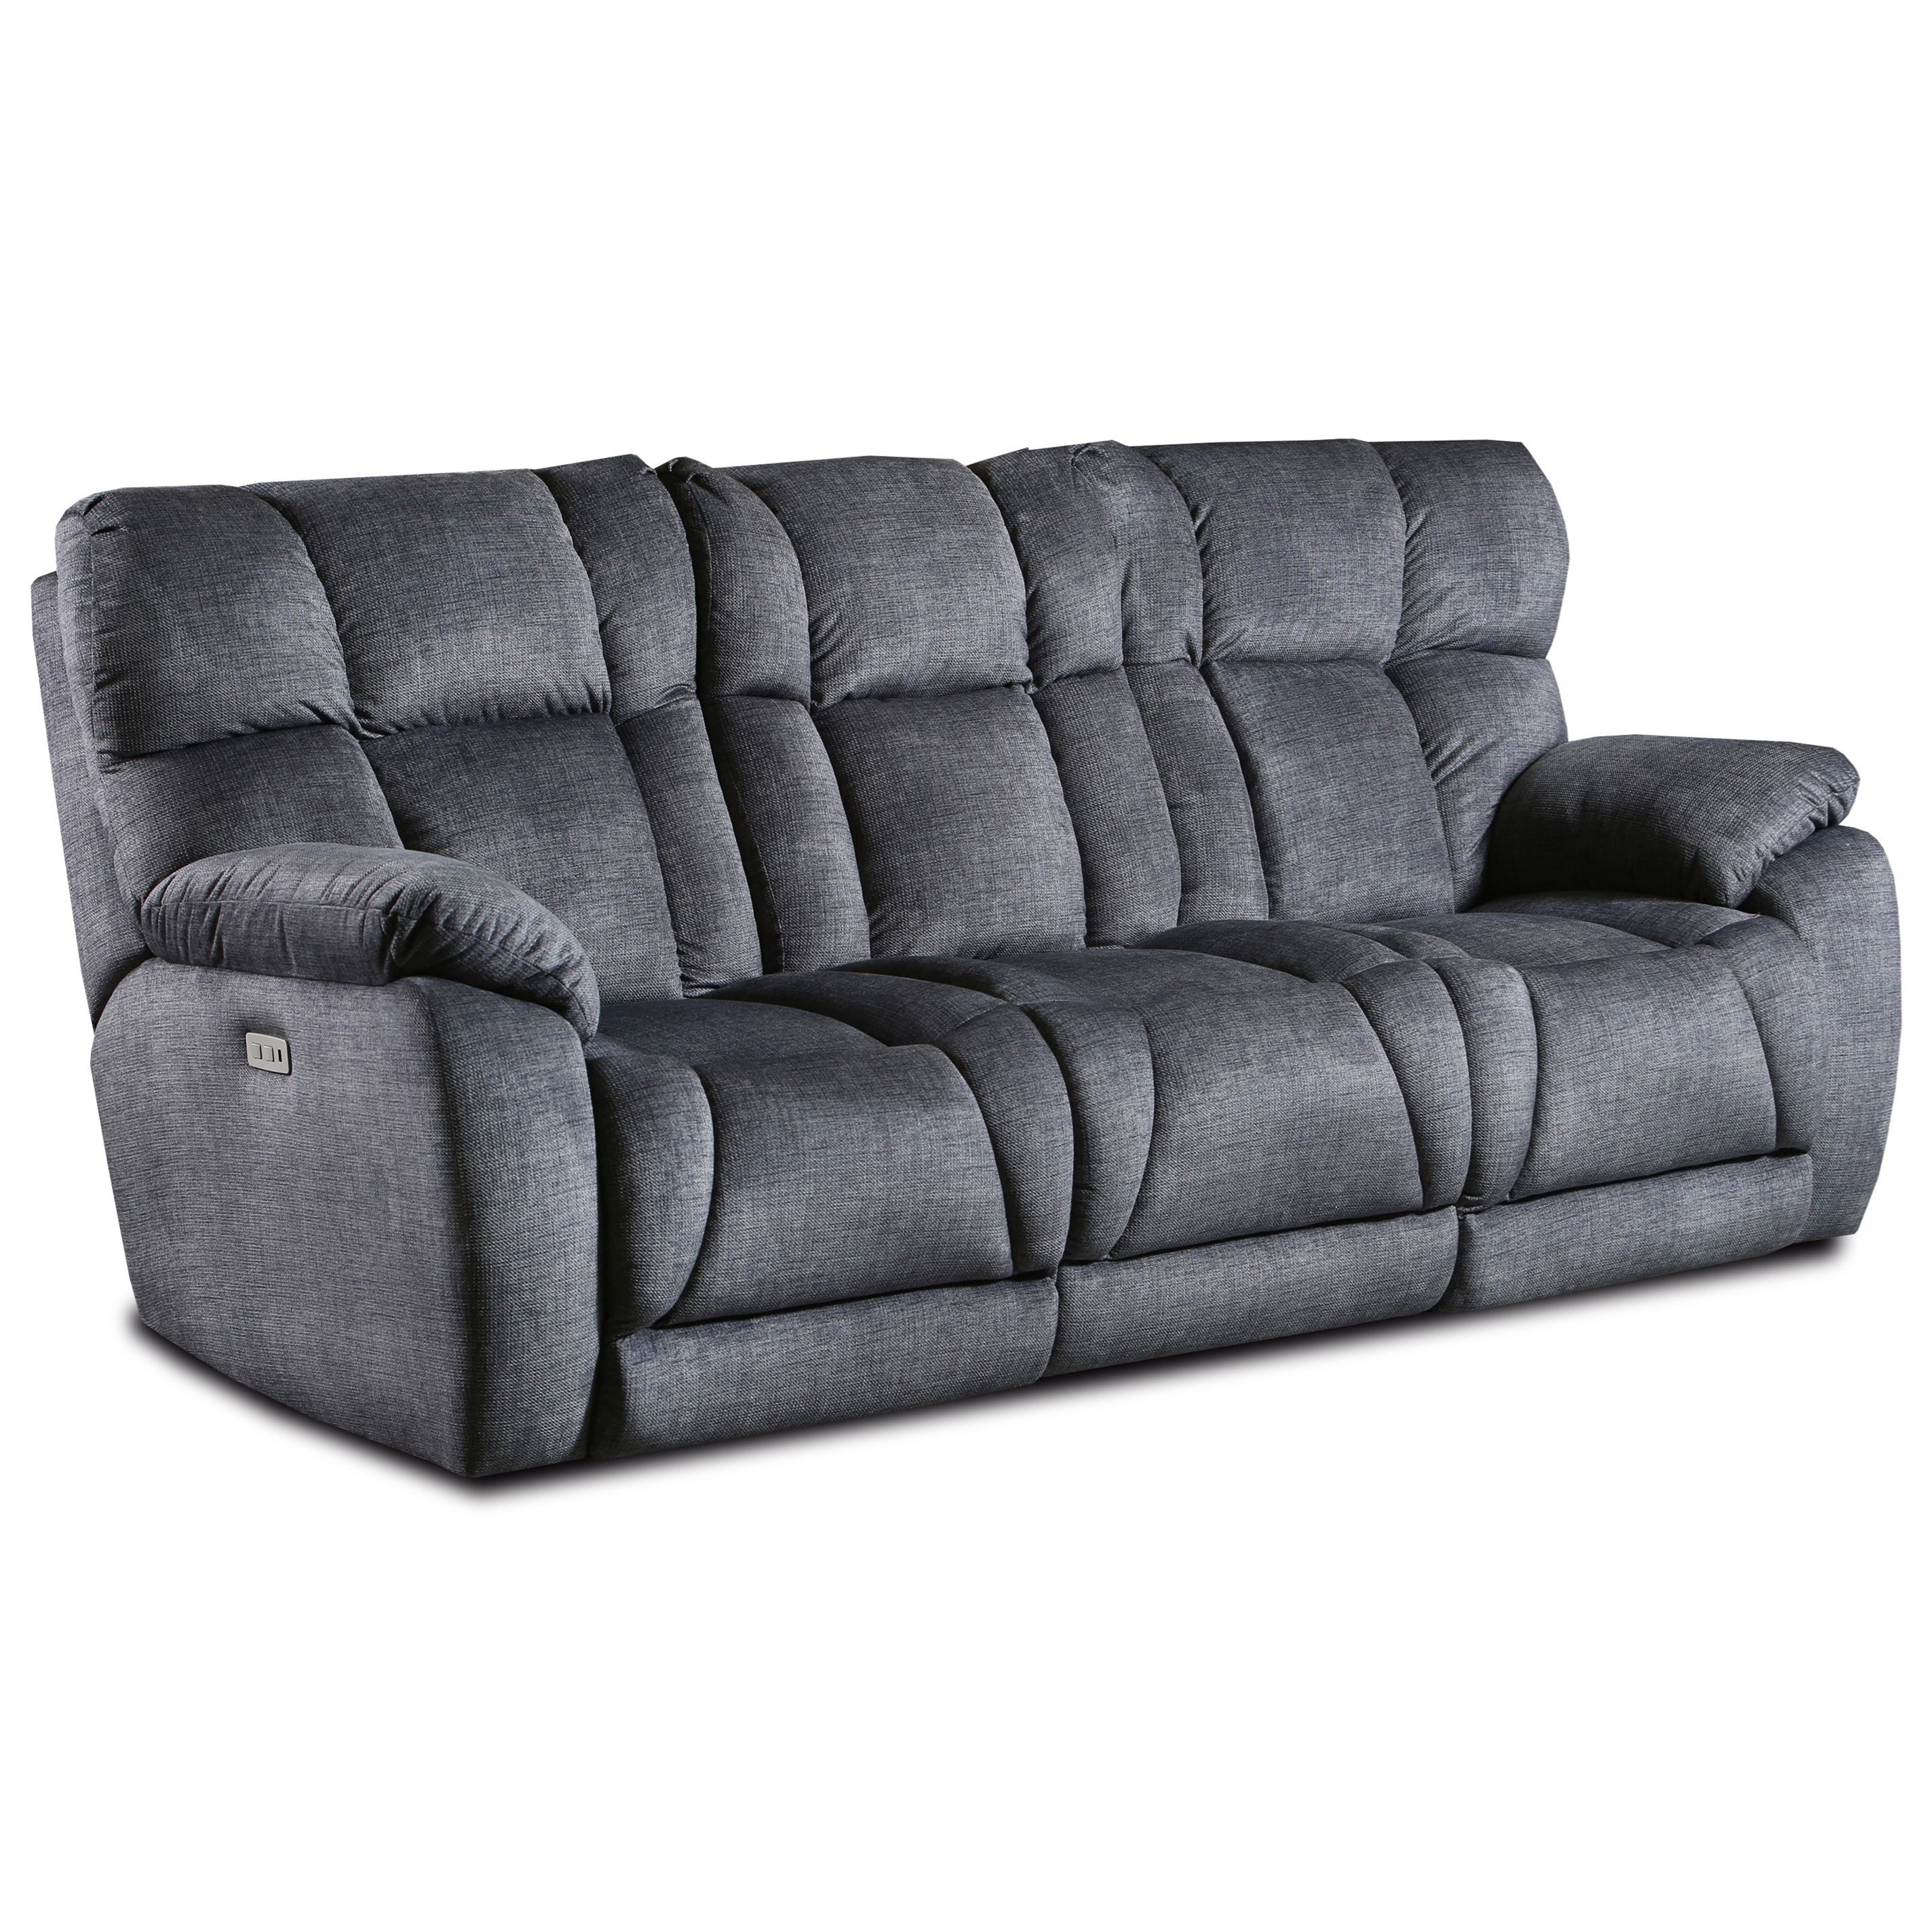 Wild Card Double Reclining Sofa w/ Dropdown Table by Southern Motion at Furniture Barn